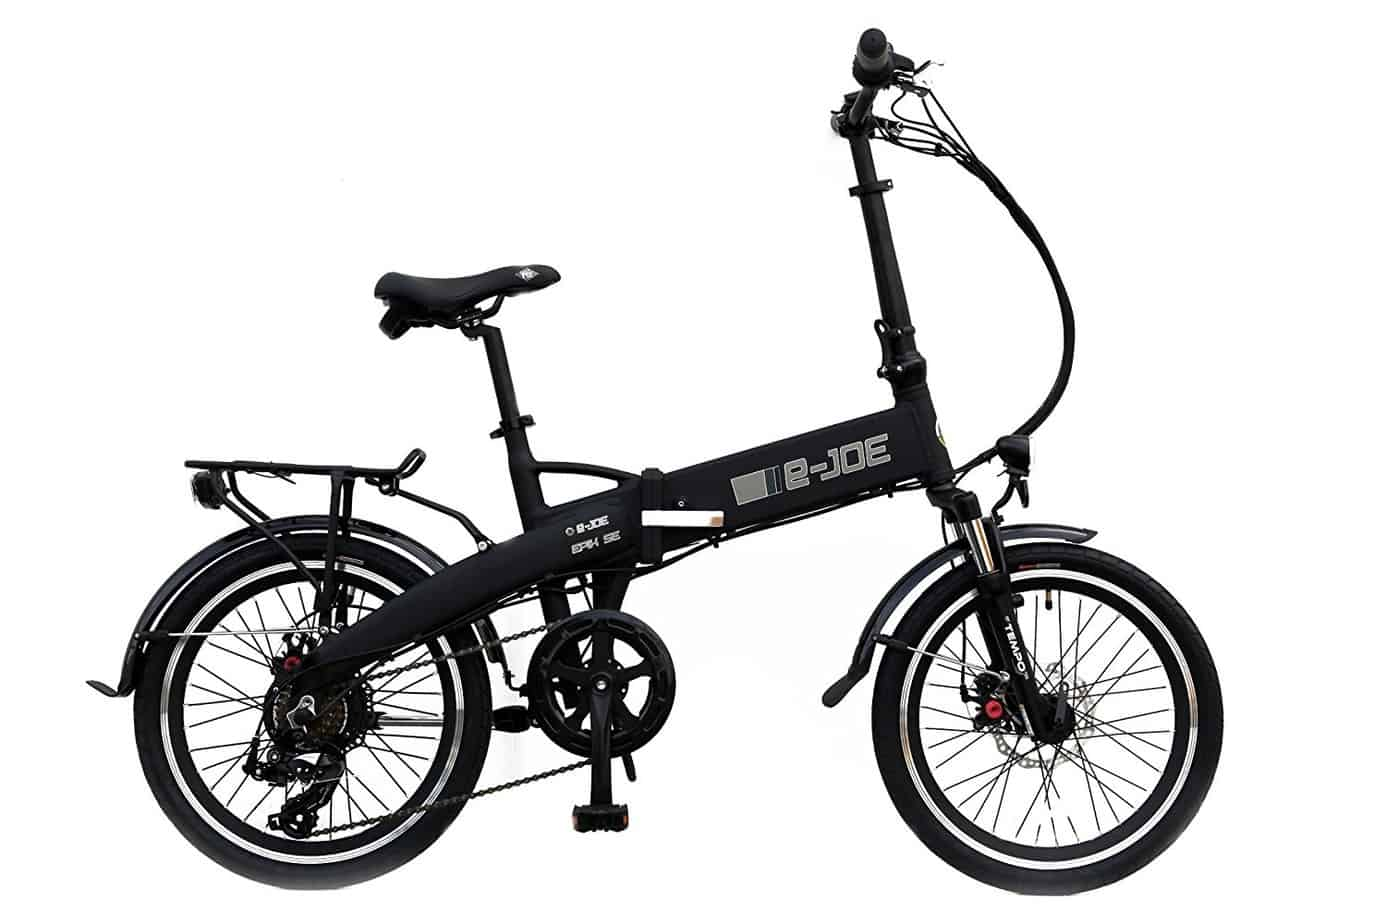 e-JOE Epik SE Sport Edition Electric Folding Bicycle